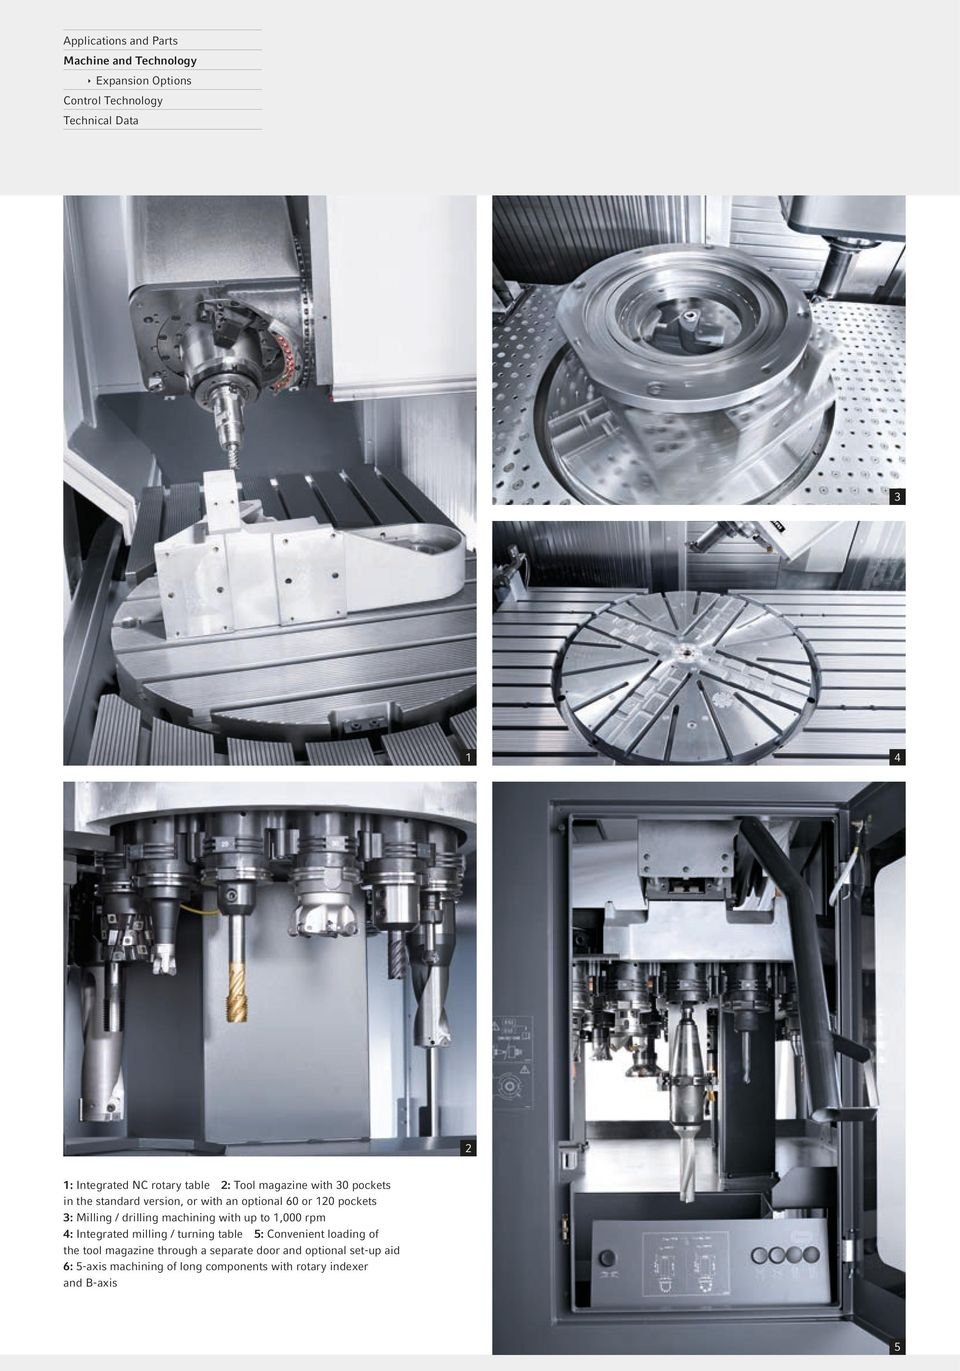 Milling / drilling machining with up to 1,000 rpm 4: Integrated milling / turning table 5: Convenient loading of the tool